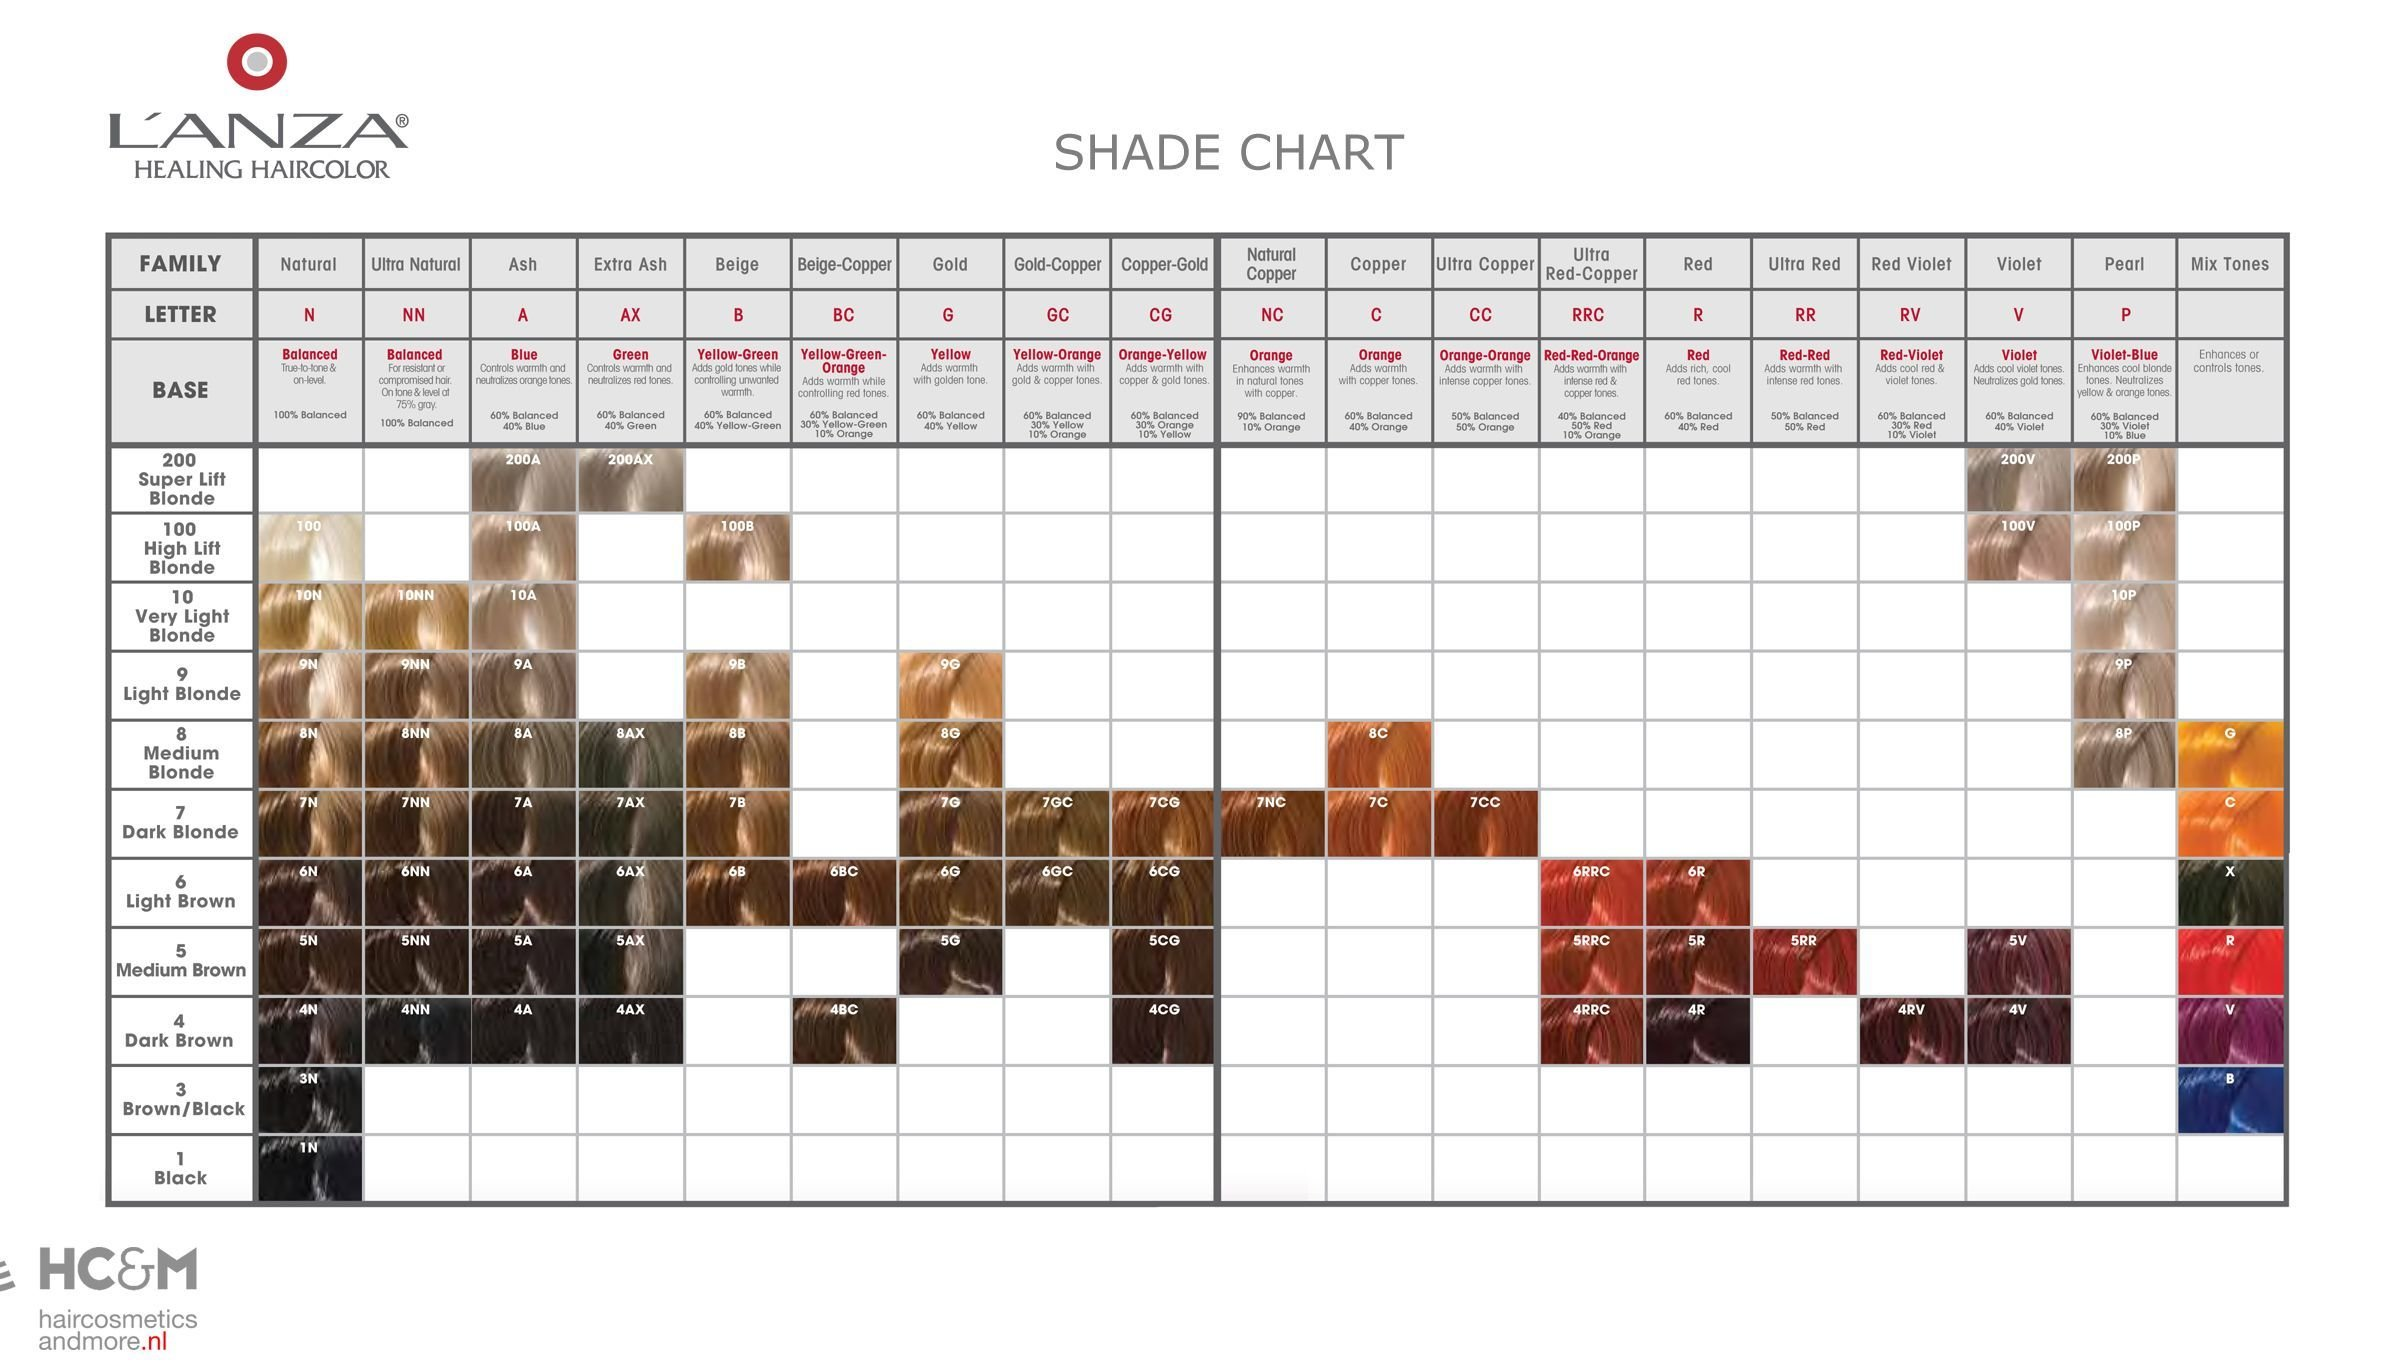 The Best L Anza Healing Haircare Healing Haircolor Shade Chart Pictures